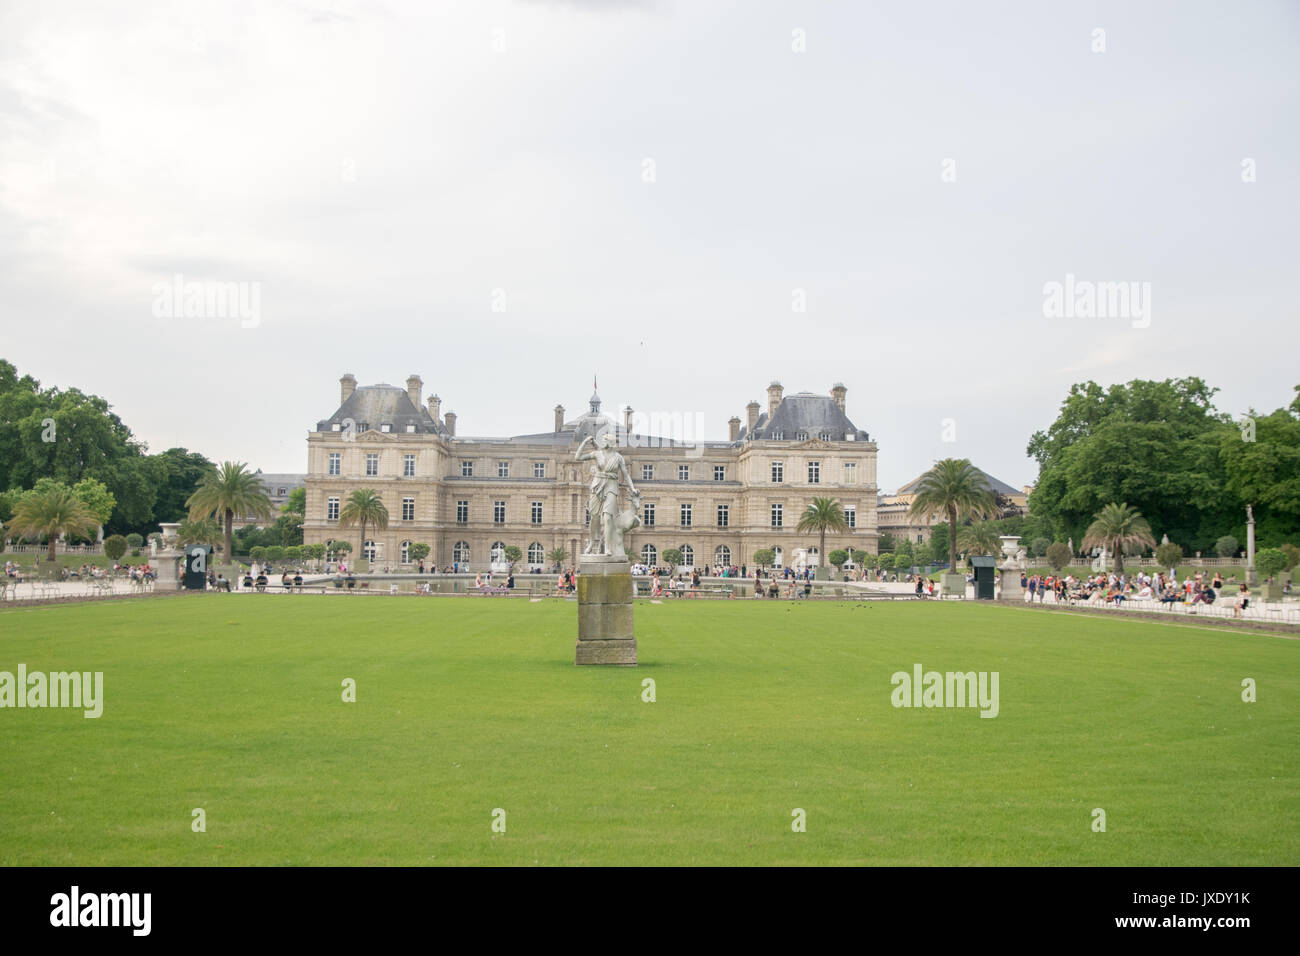 Jardin Du Palais Royal Stock Photos & Jardin Du Palais Royal Stock ...